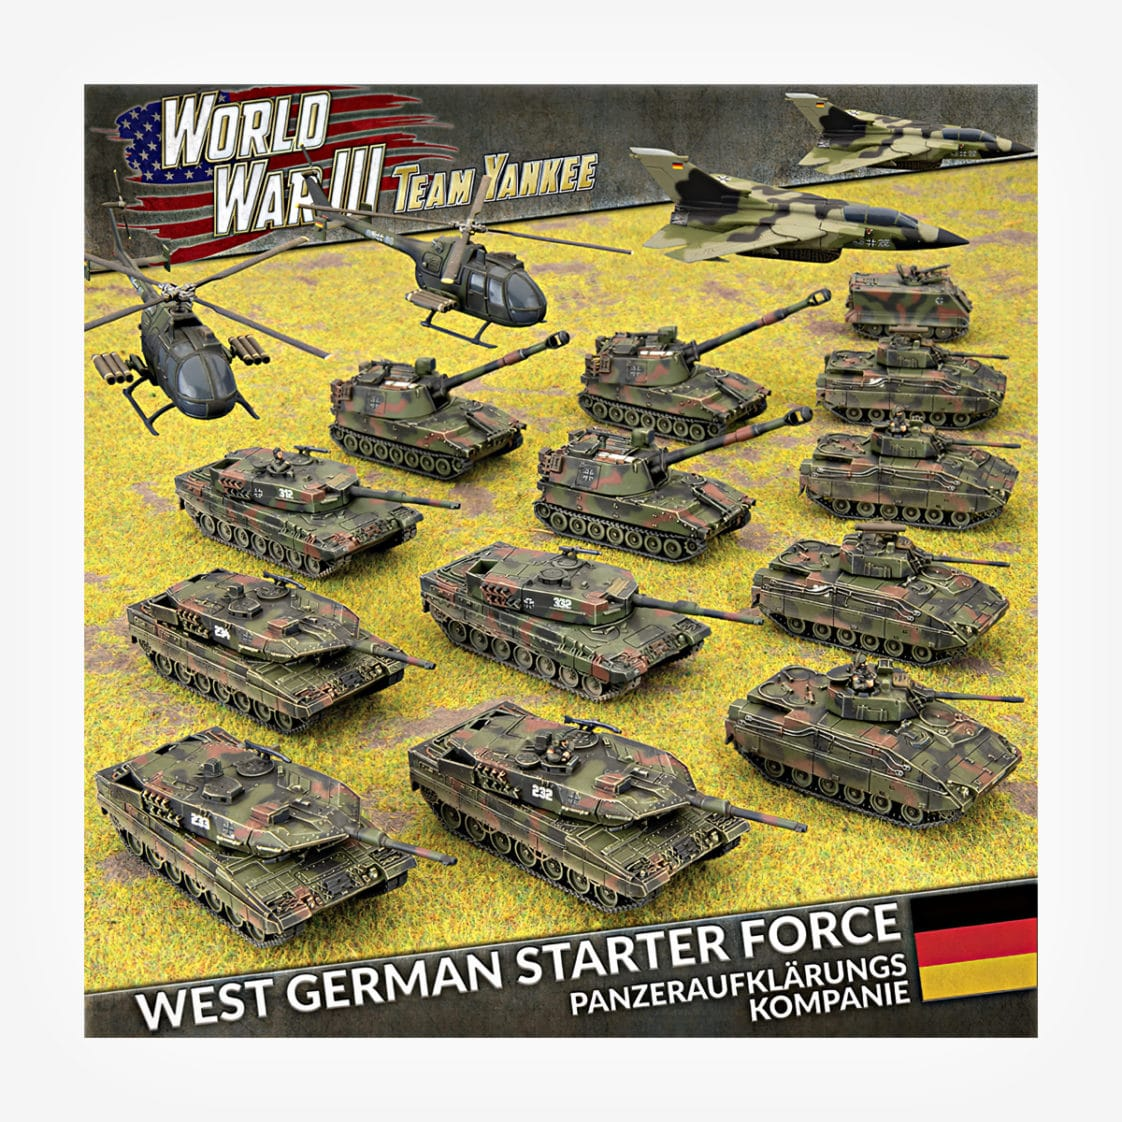 WWIII: West German Starter Force - Panzeraufklärungs Kompanie